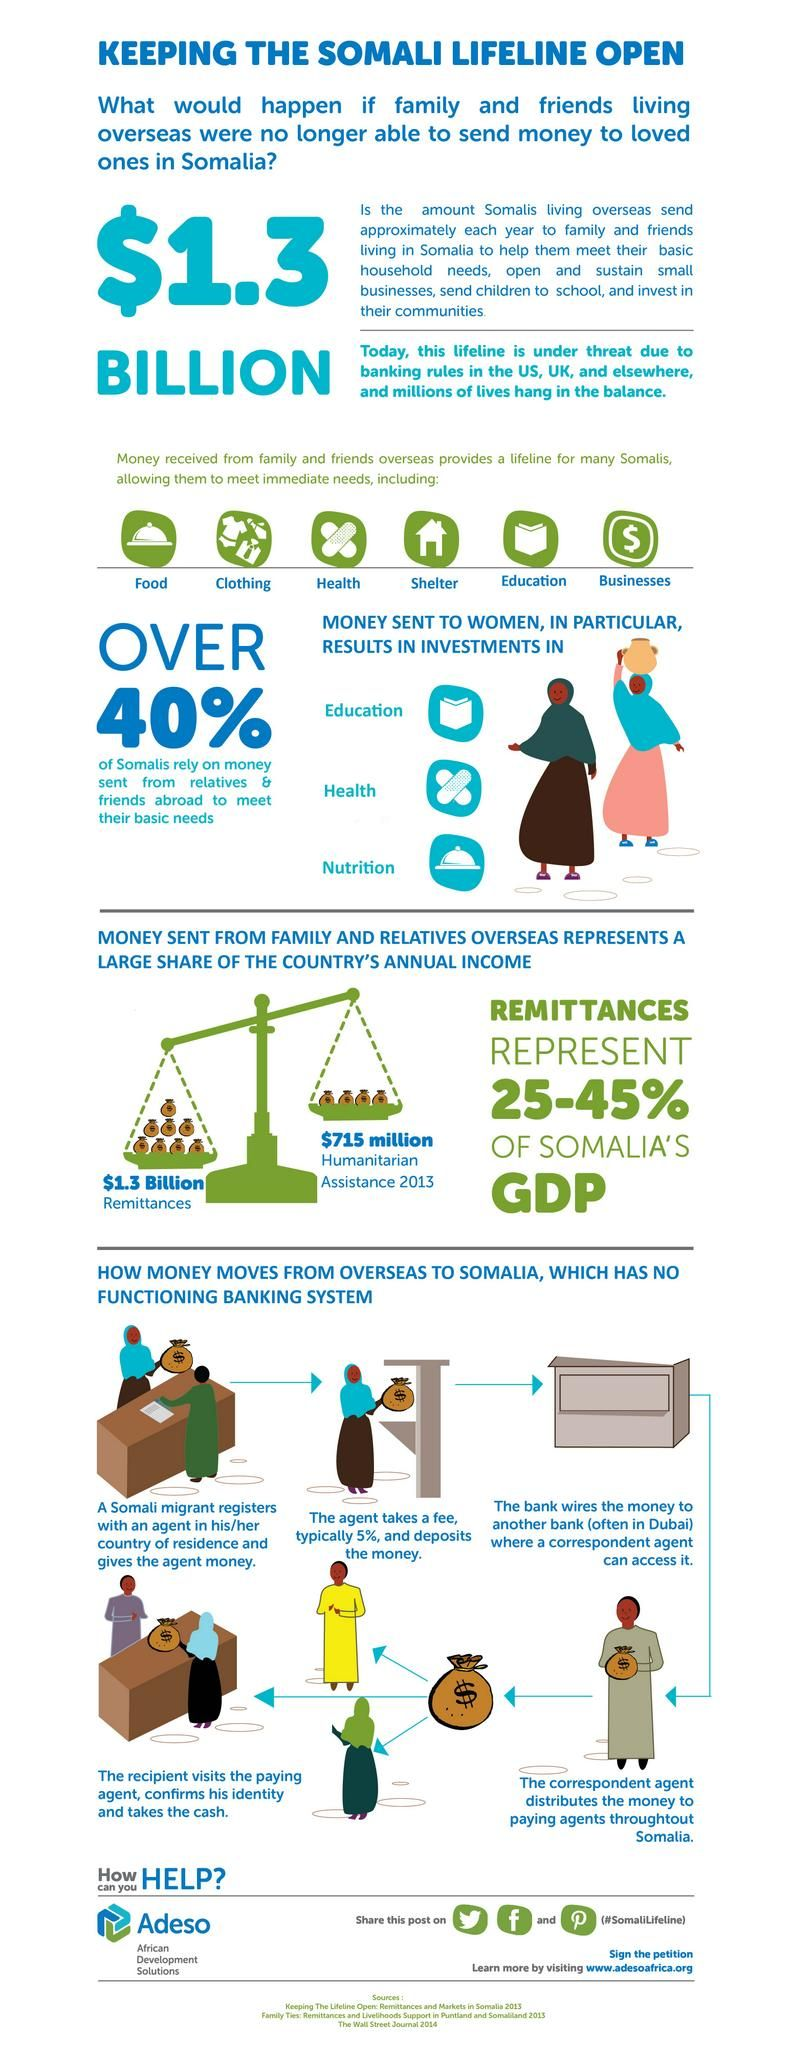 #Remittances to #Somalia explained - how does the money transfer system work? By @Adesoafrica